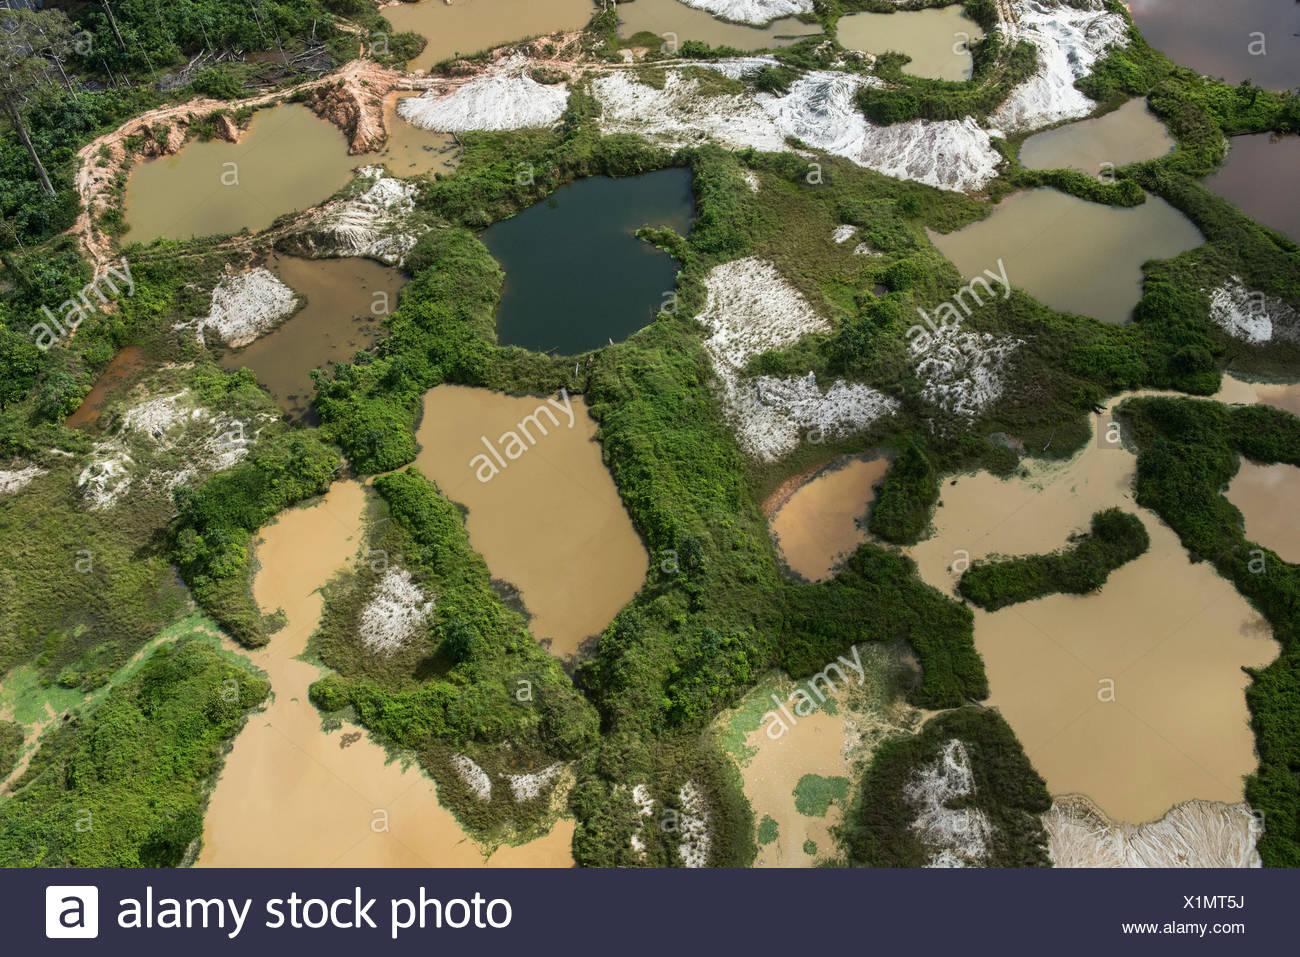 Aerial view of illegal gold mining in Arimu, Guyana, South America - Stock Image